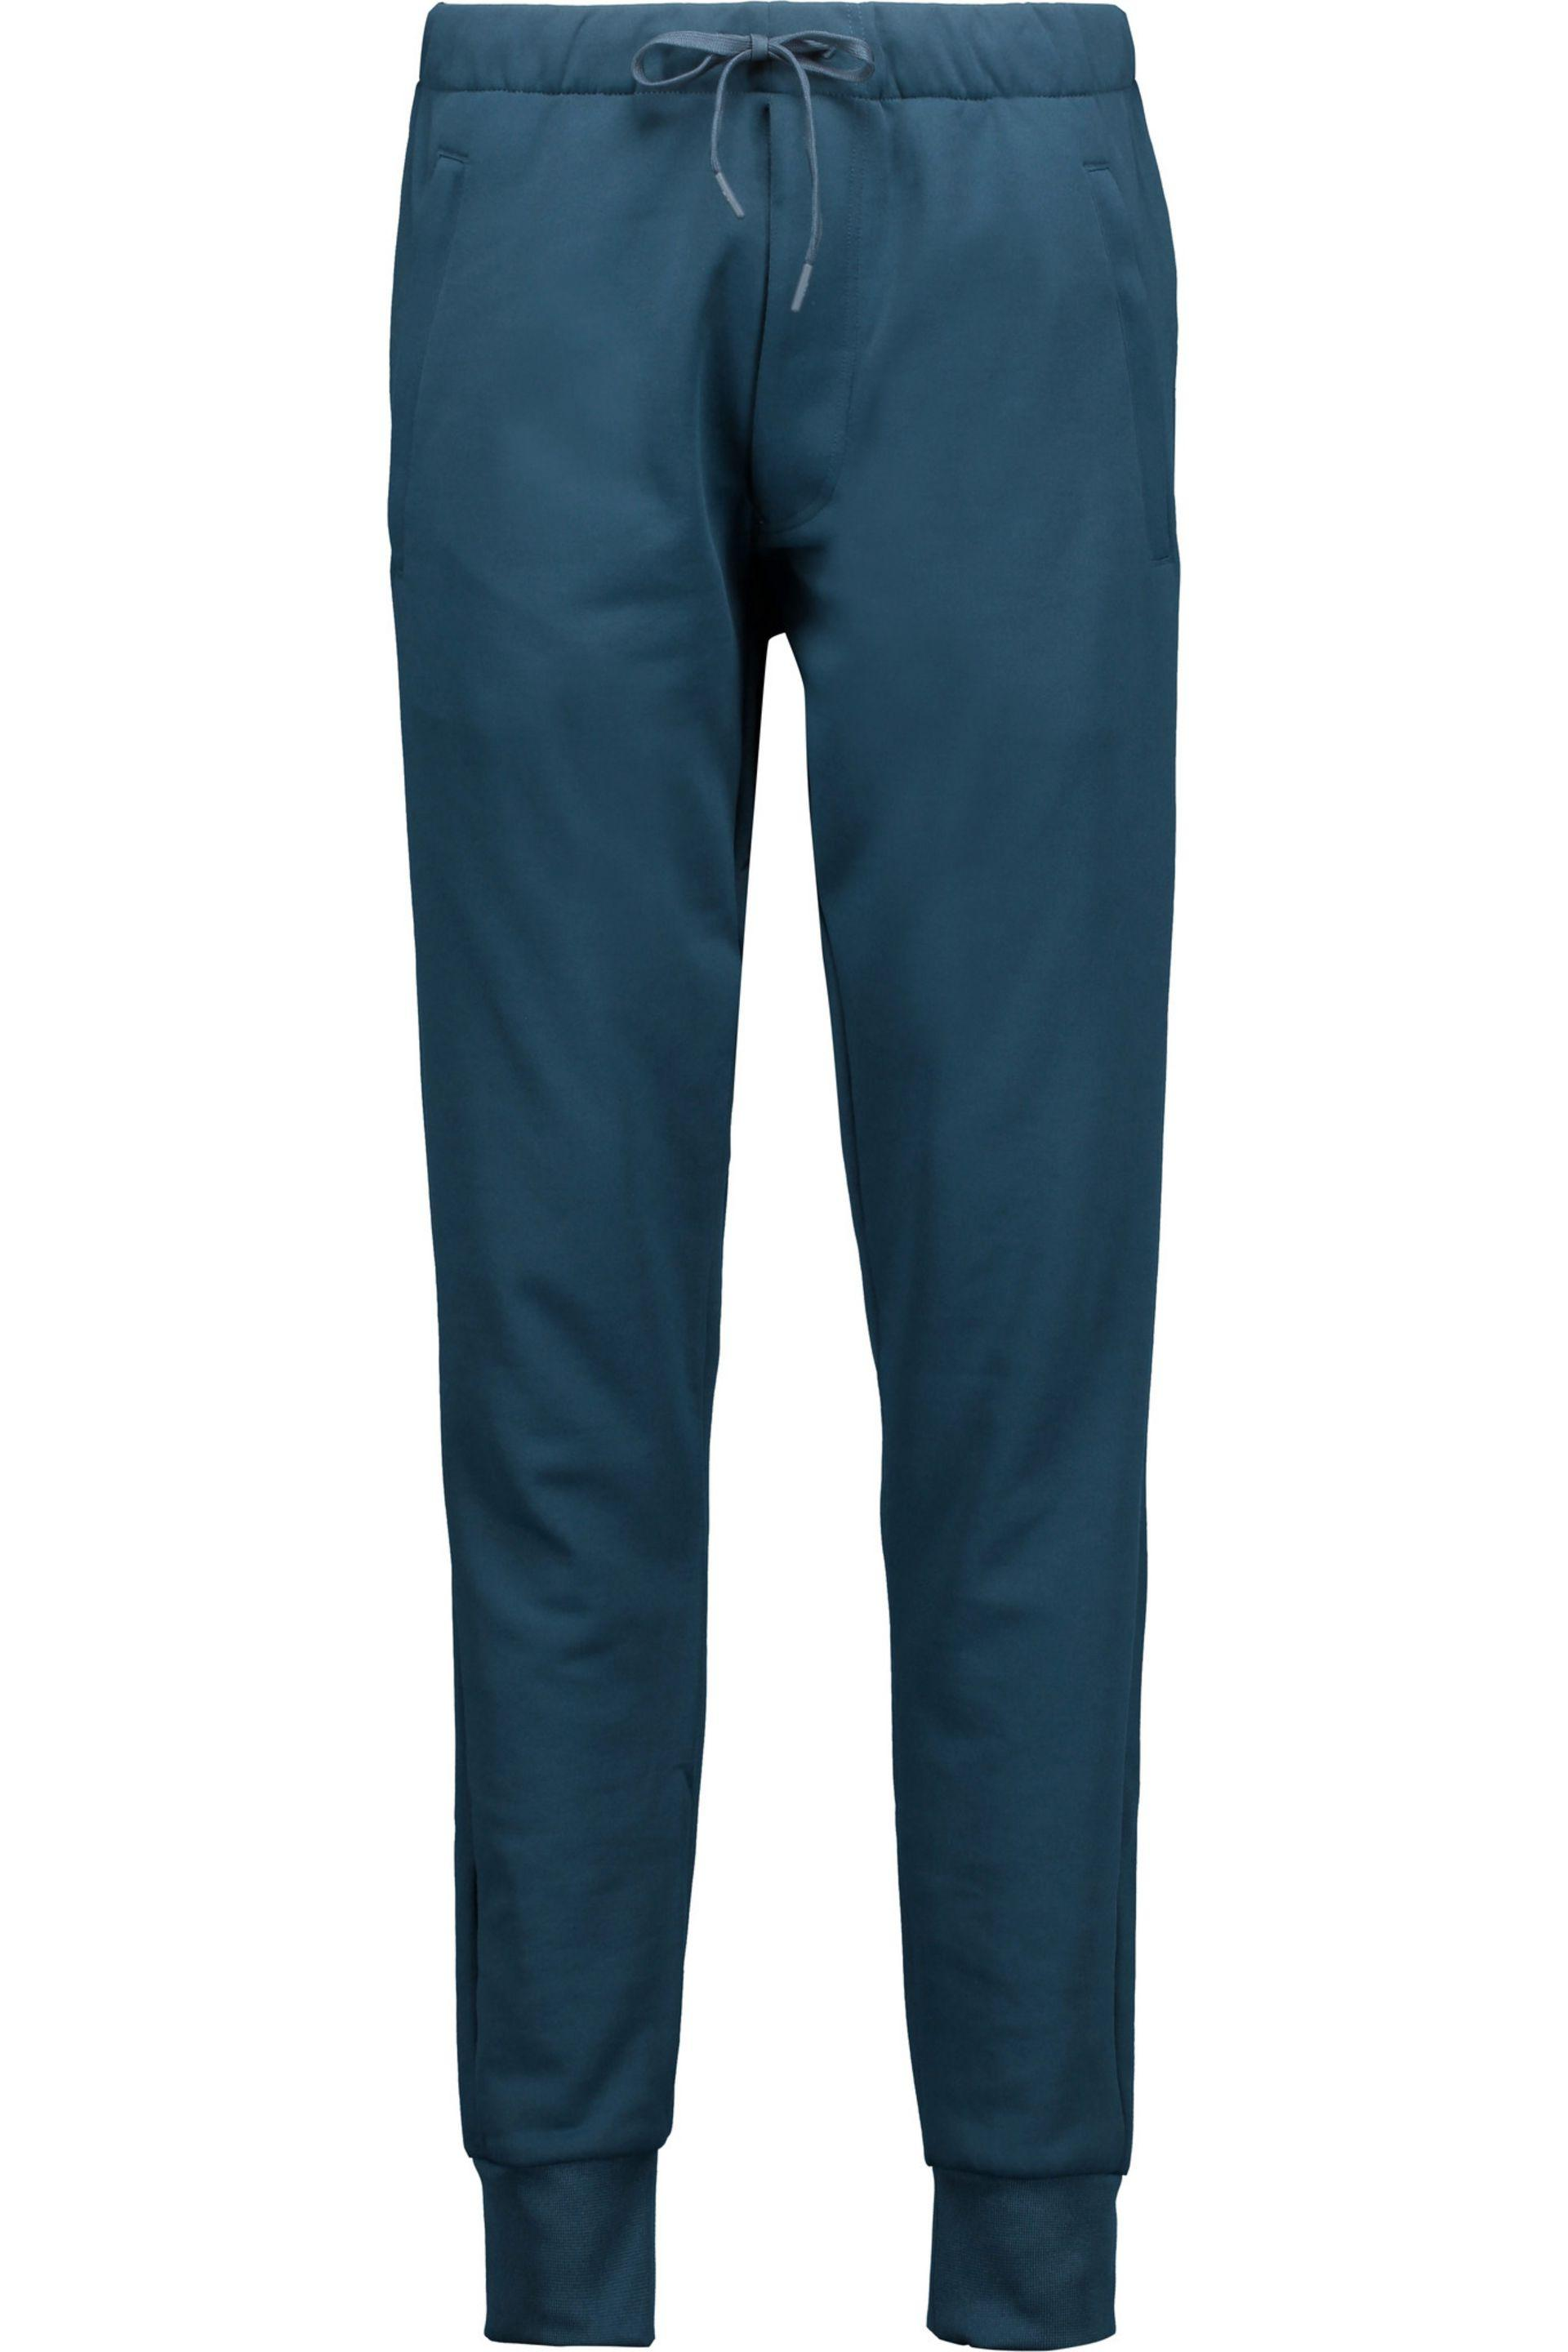 f13adc83fc58a Lyst - Y-3 + Adidas Originals Cotton-jersey Track Pants in Blue